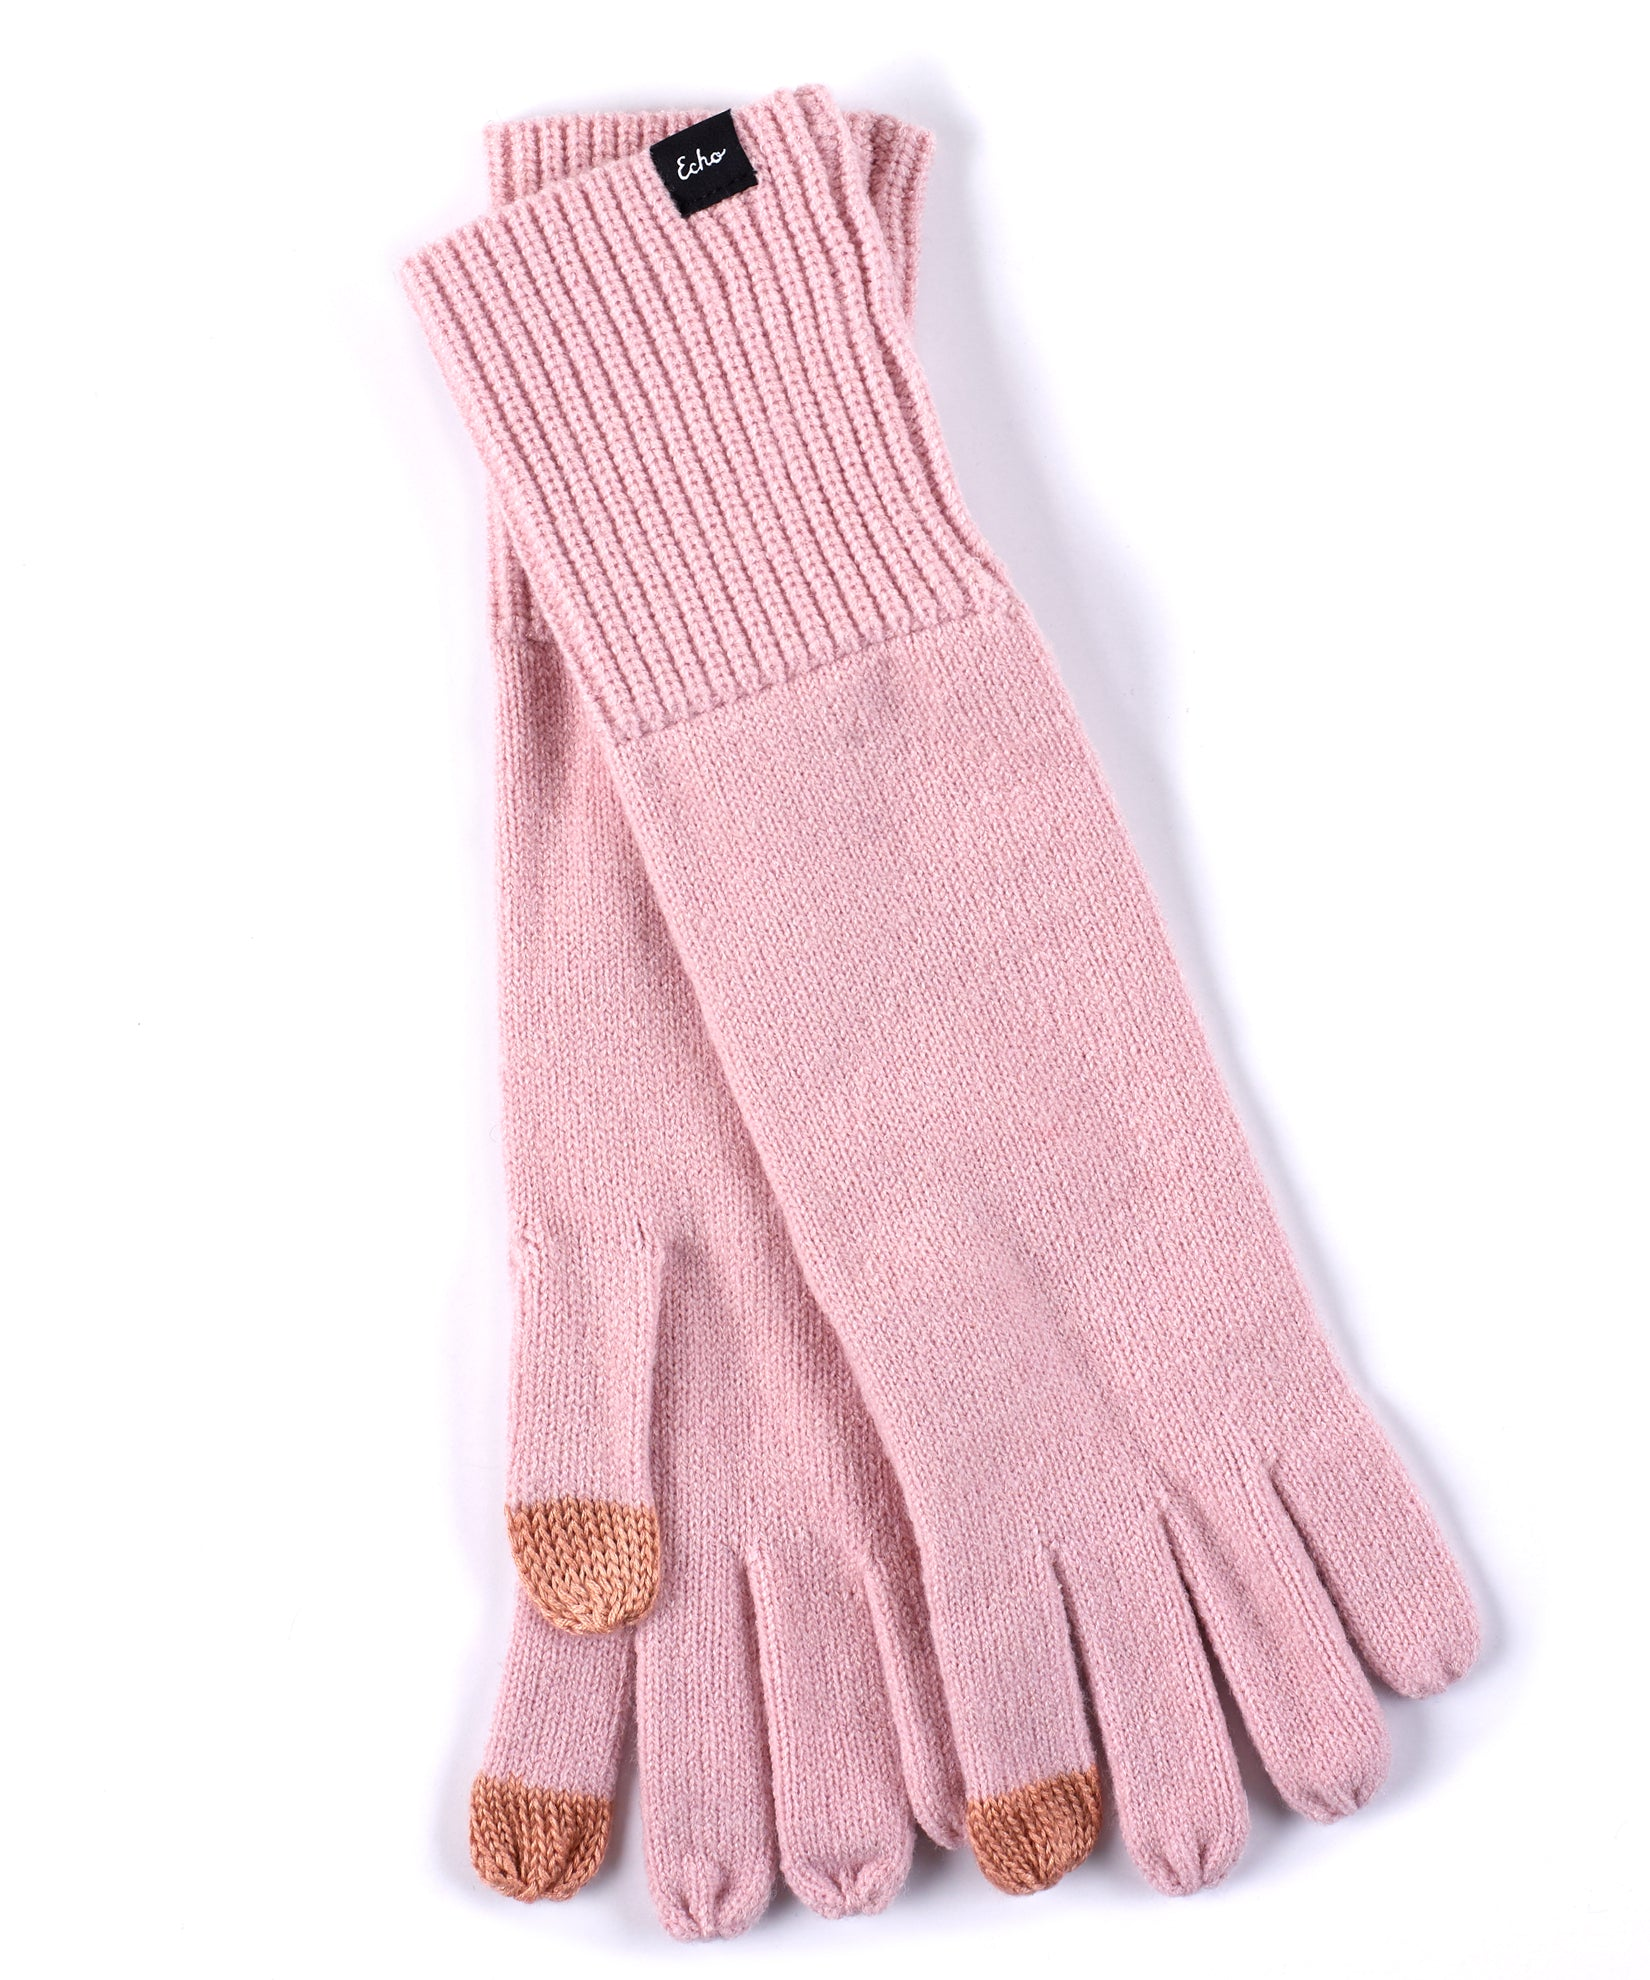 Jaipur Pink - Active Stretch Glove